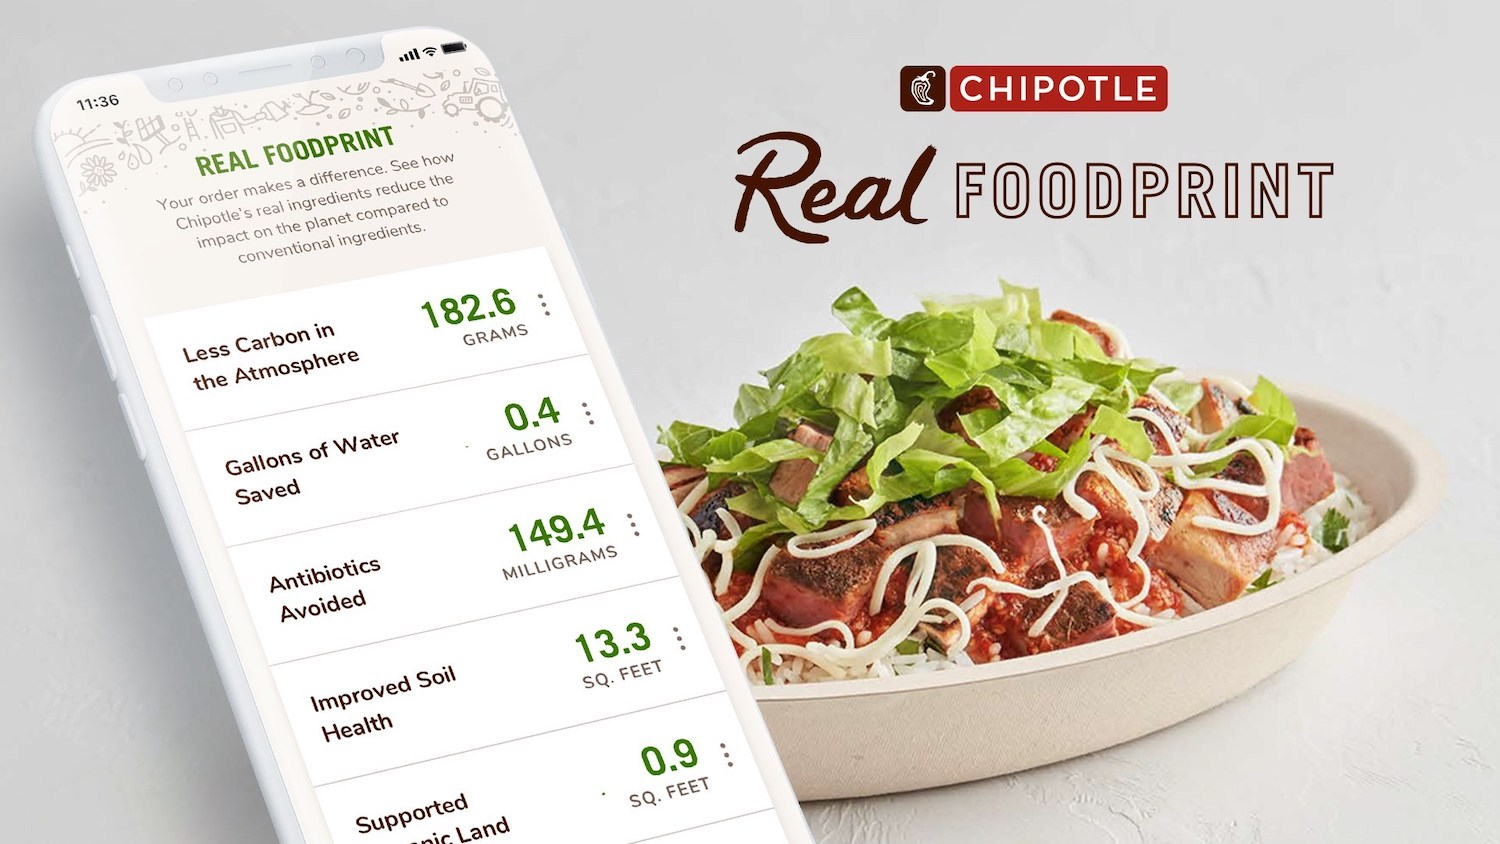 Chipotle Real Foodprint impact tracker